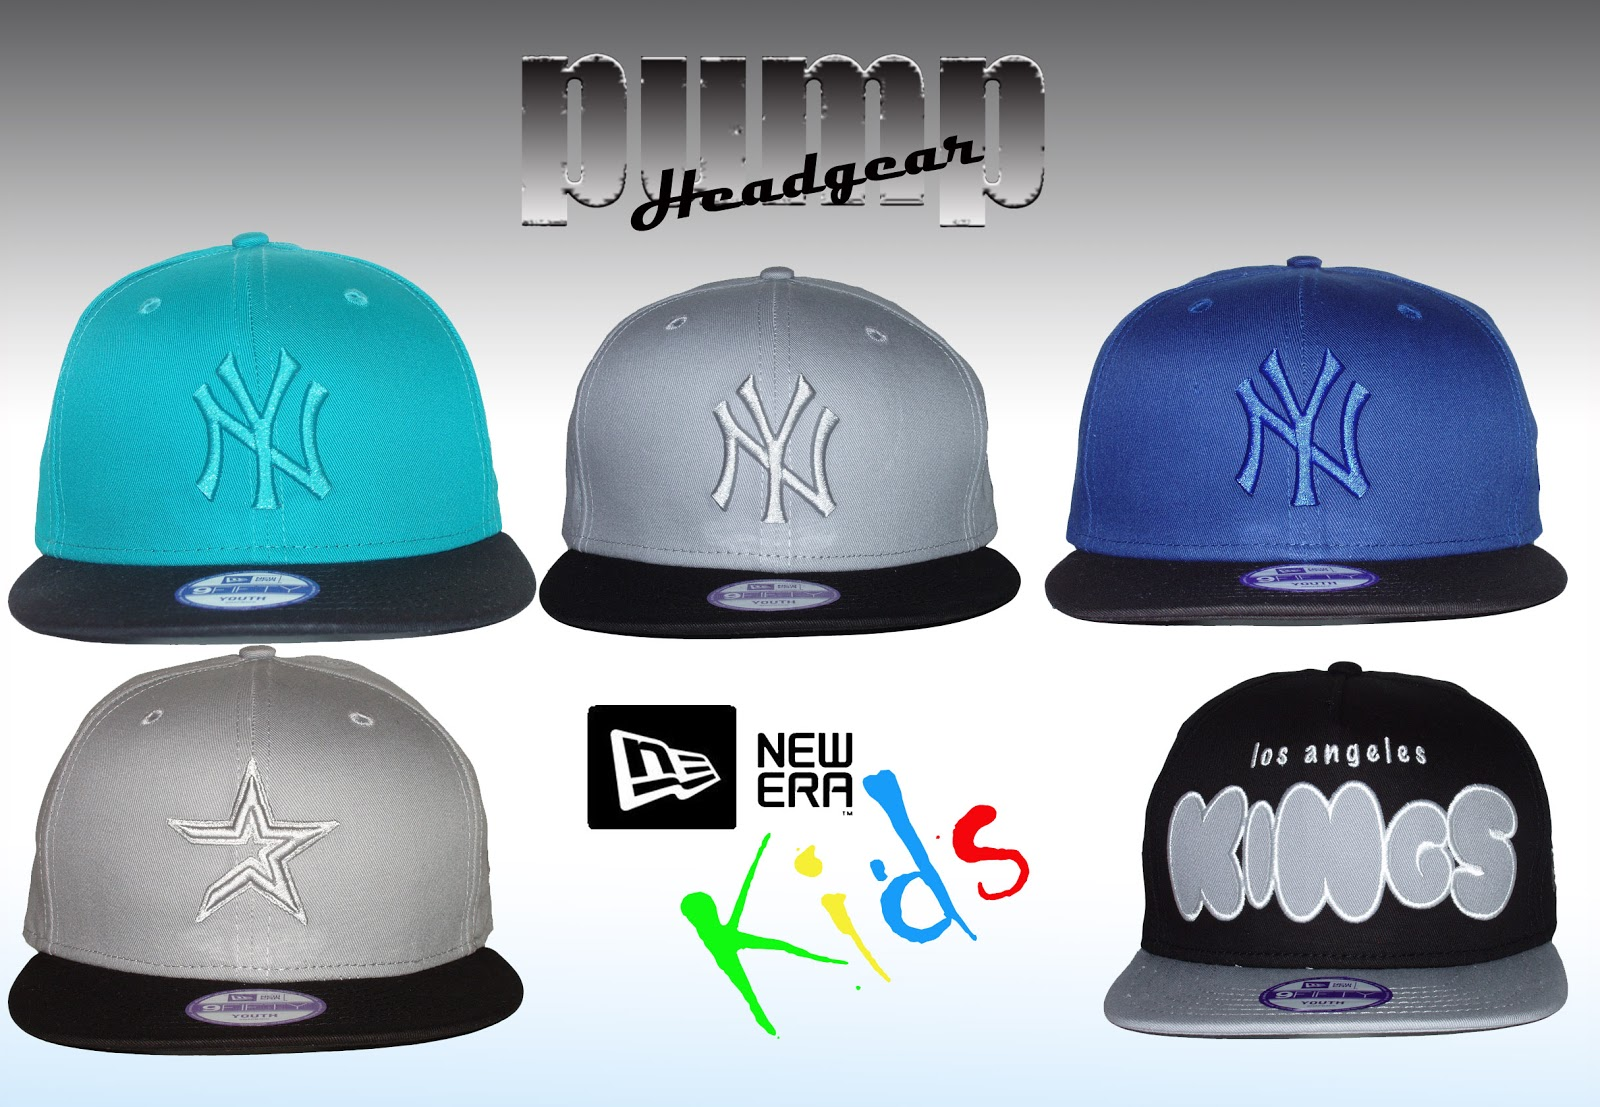 Kids New Era Snapback Caps 2d1fd9cef22